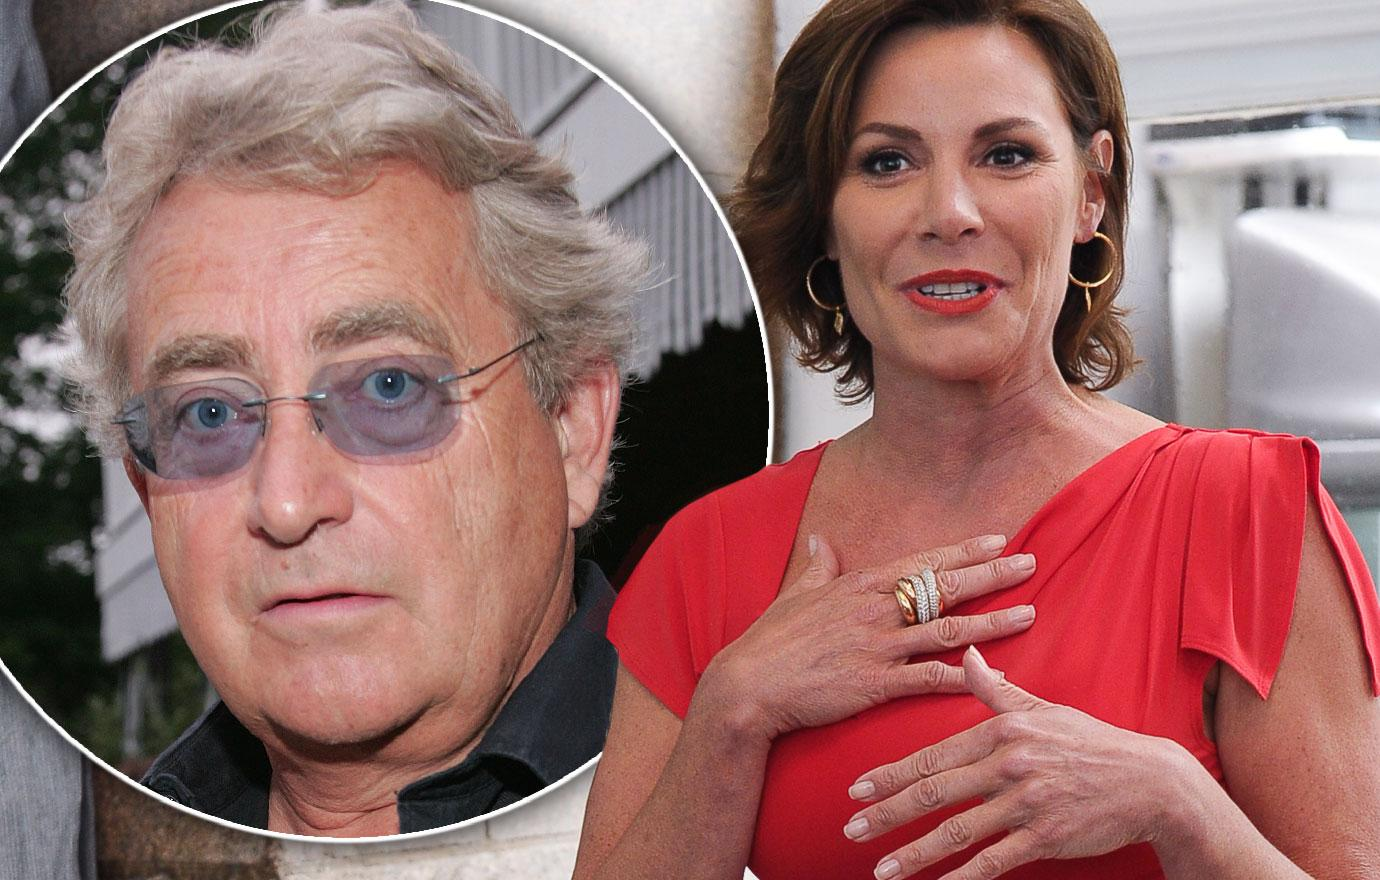 Luann De Lesseps Count Ex Husband Wants Her To Quit Using Name Title